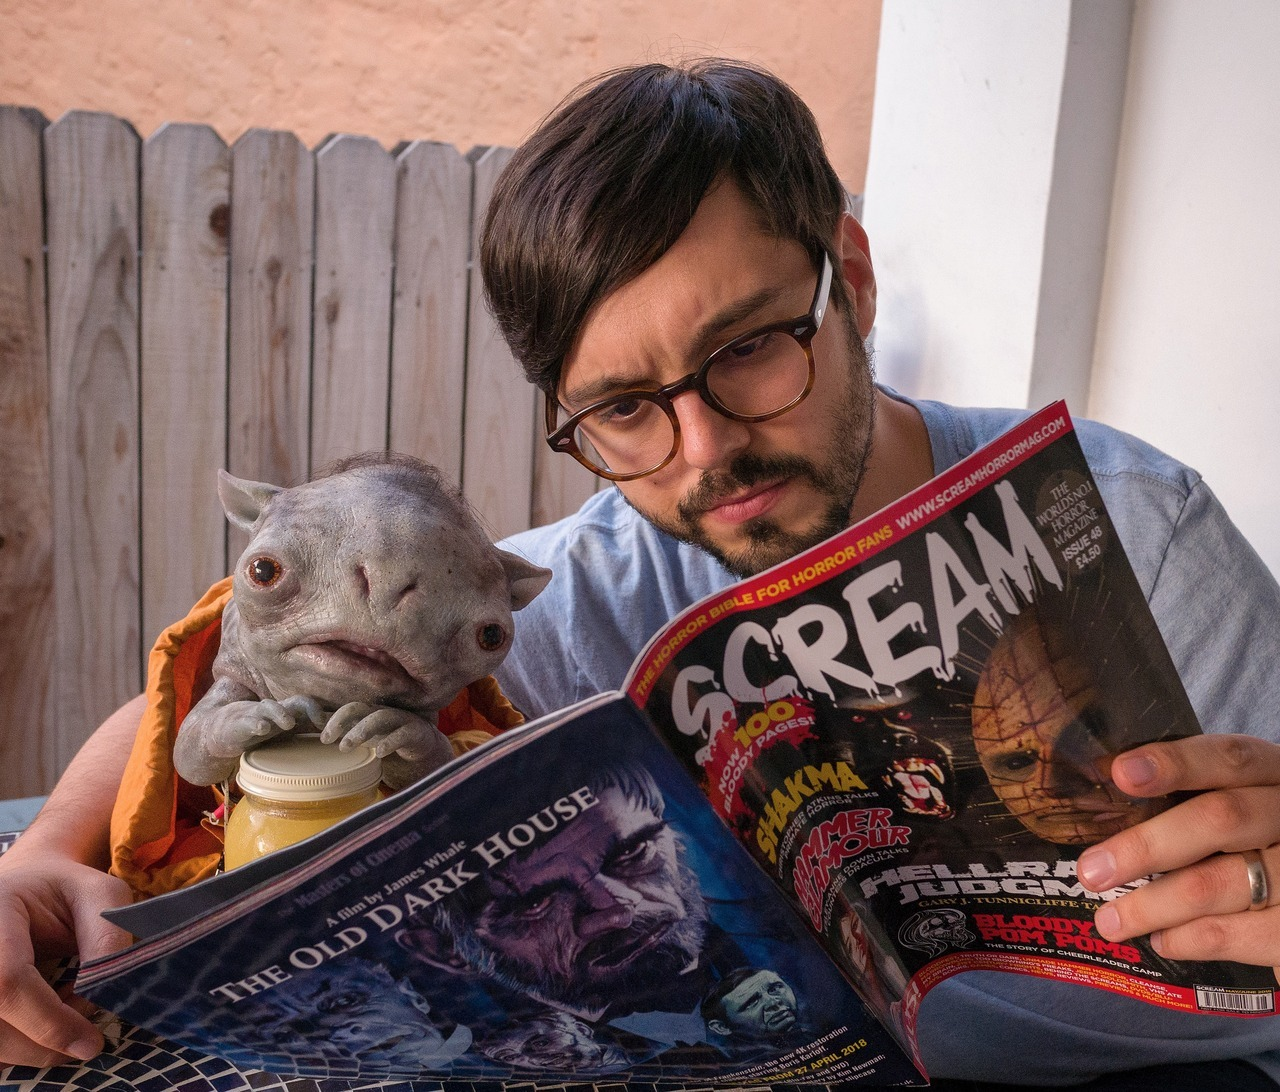 Me and PJ enjoyed reading the write up on   The Cleanse !   Although I had to help him with the bigger words. Scream Magazine is now on sale at Barnes and Noble and Books A Million!